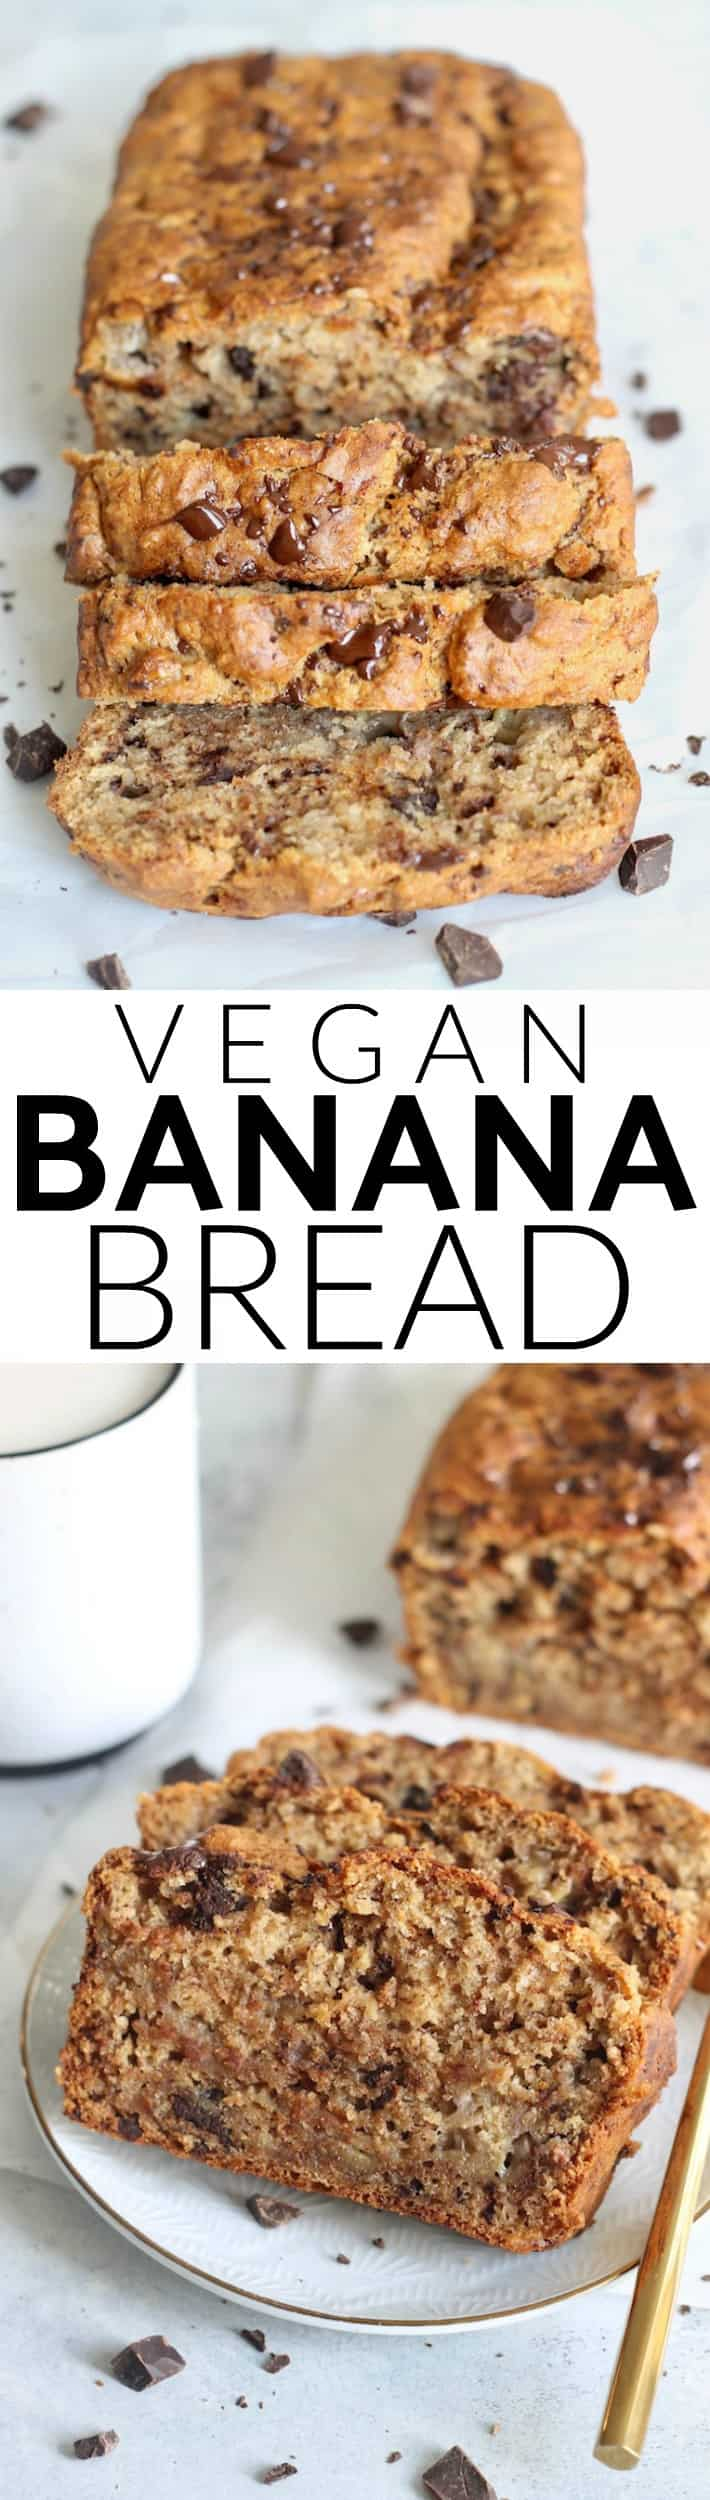 Vegan Chocolate Chunk Banana Bread that